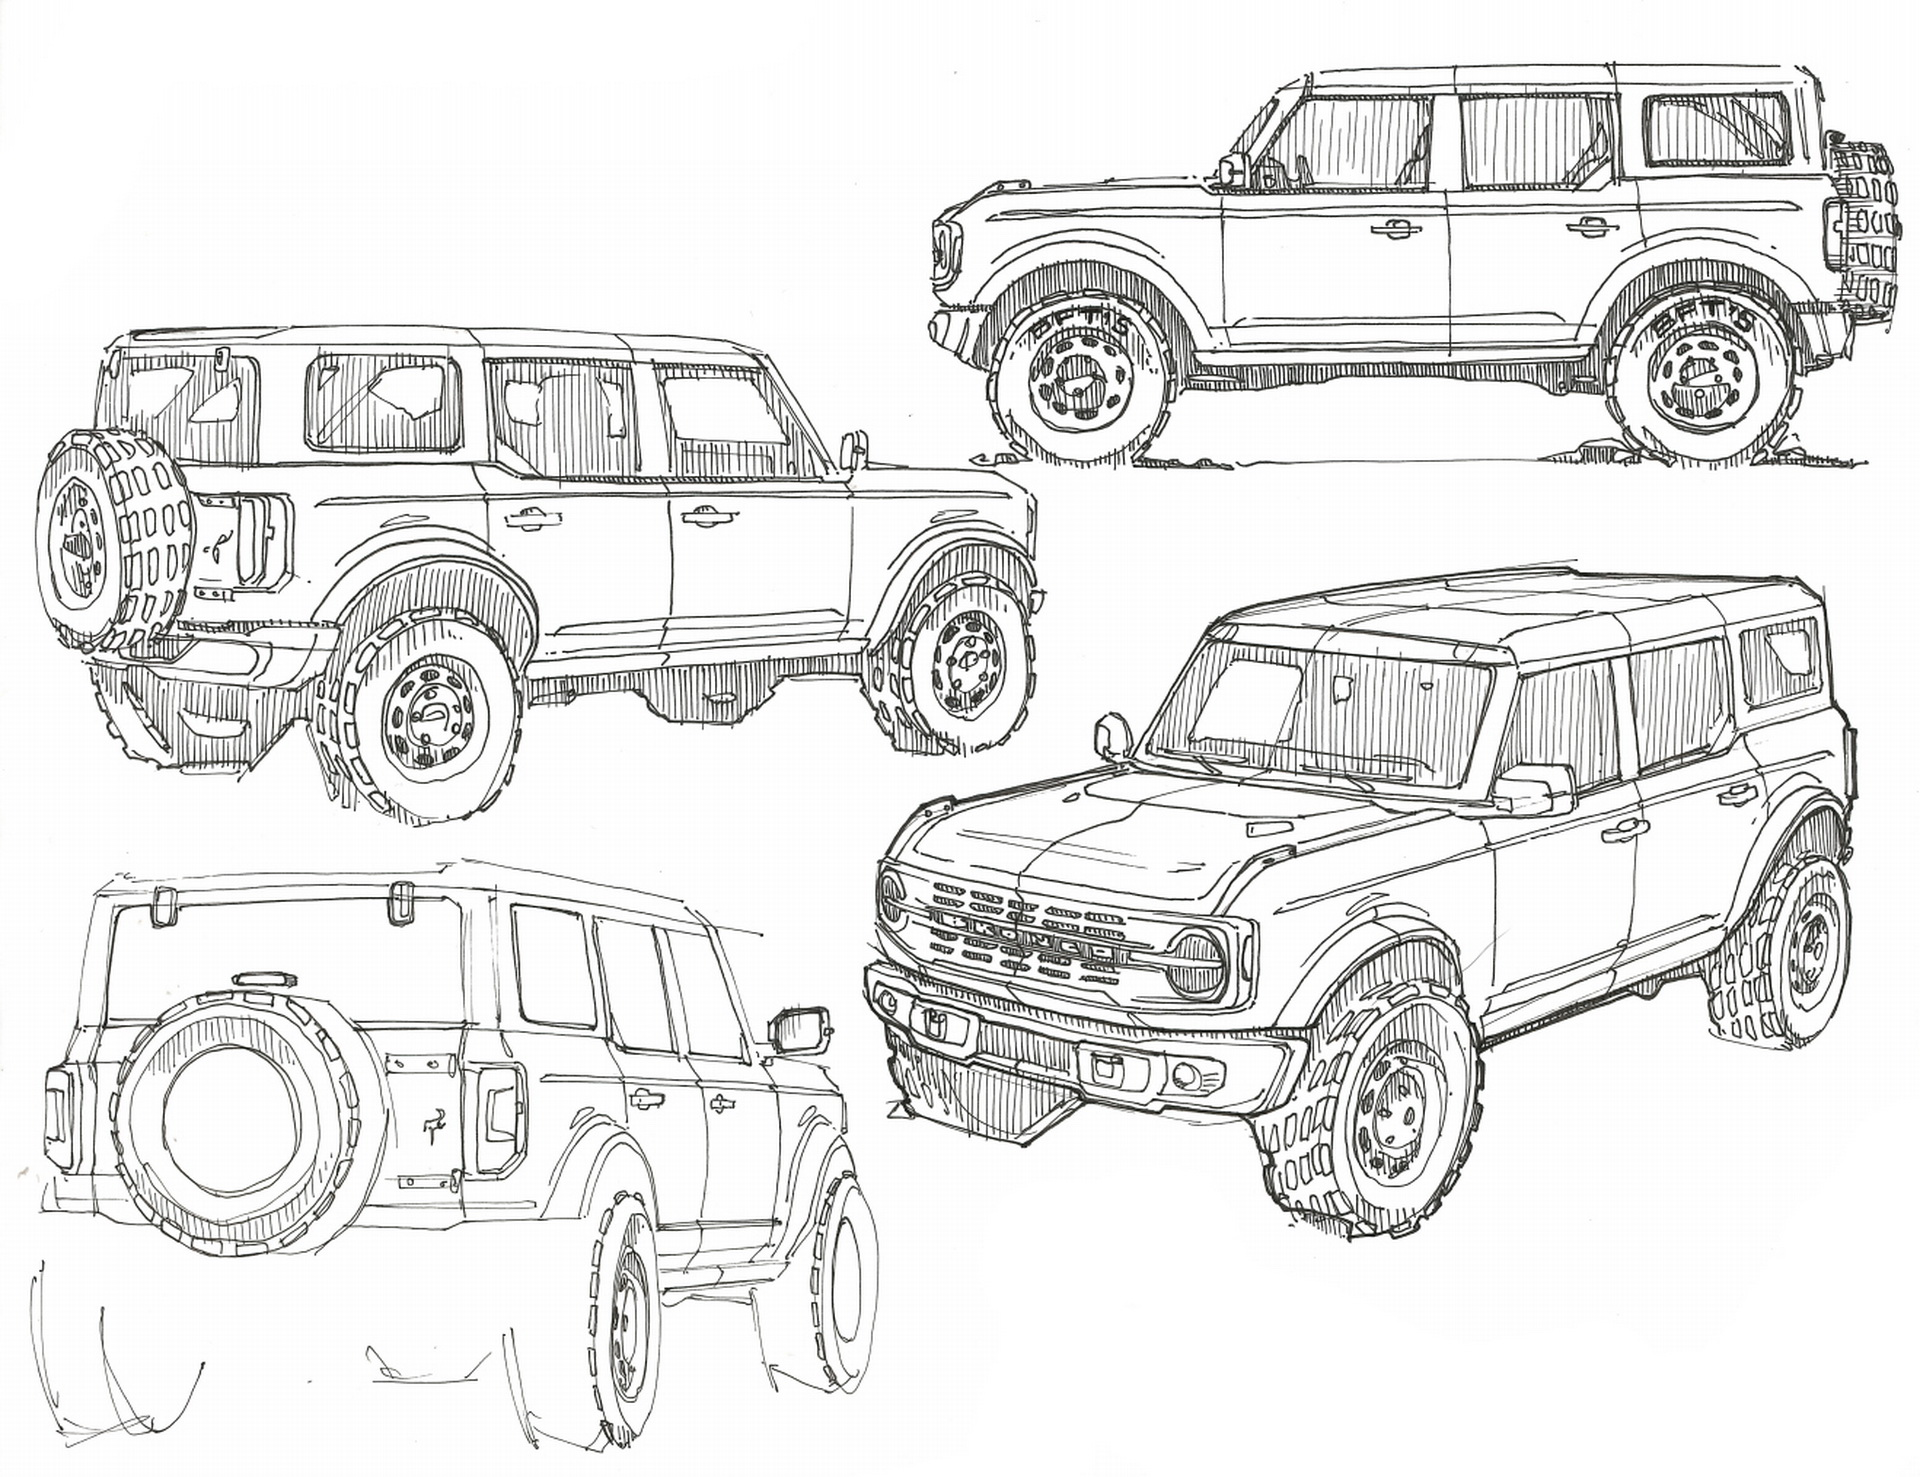 Ford Bronco Truck In The Works Could Arrive As Early As